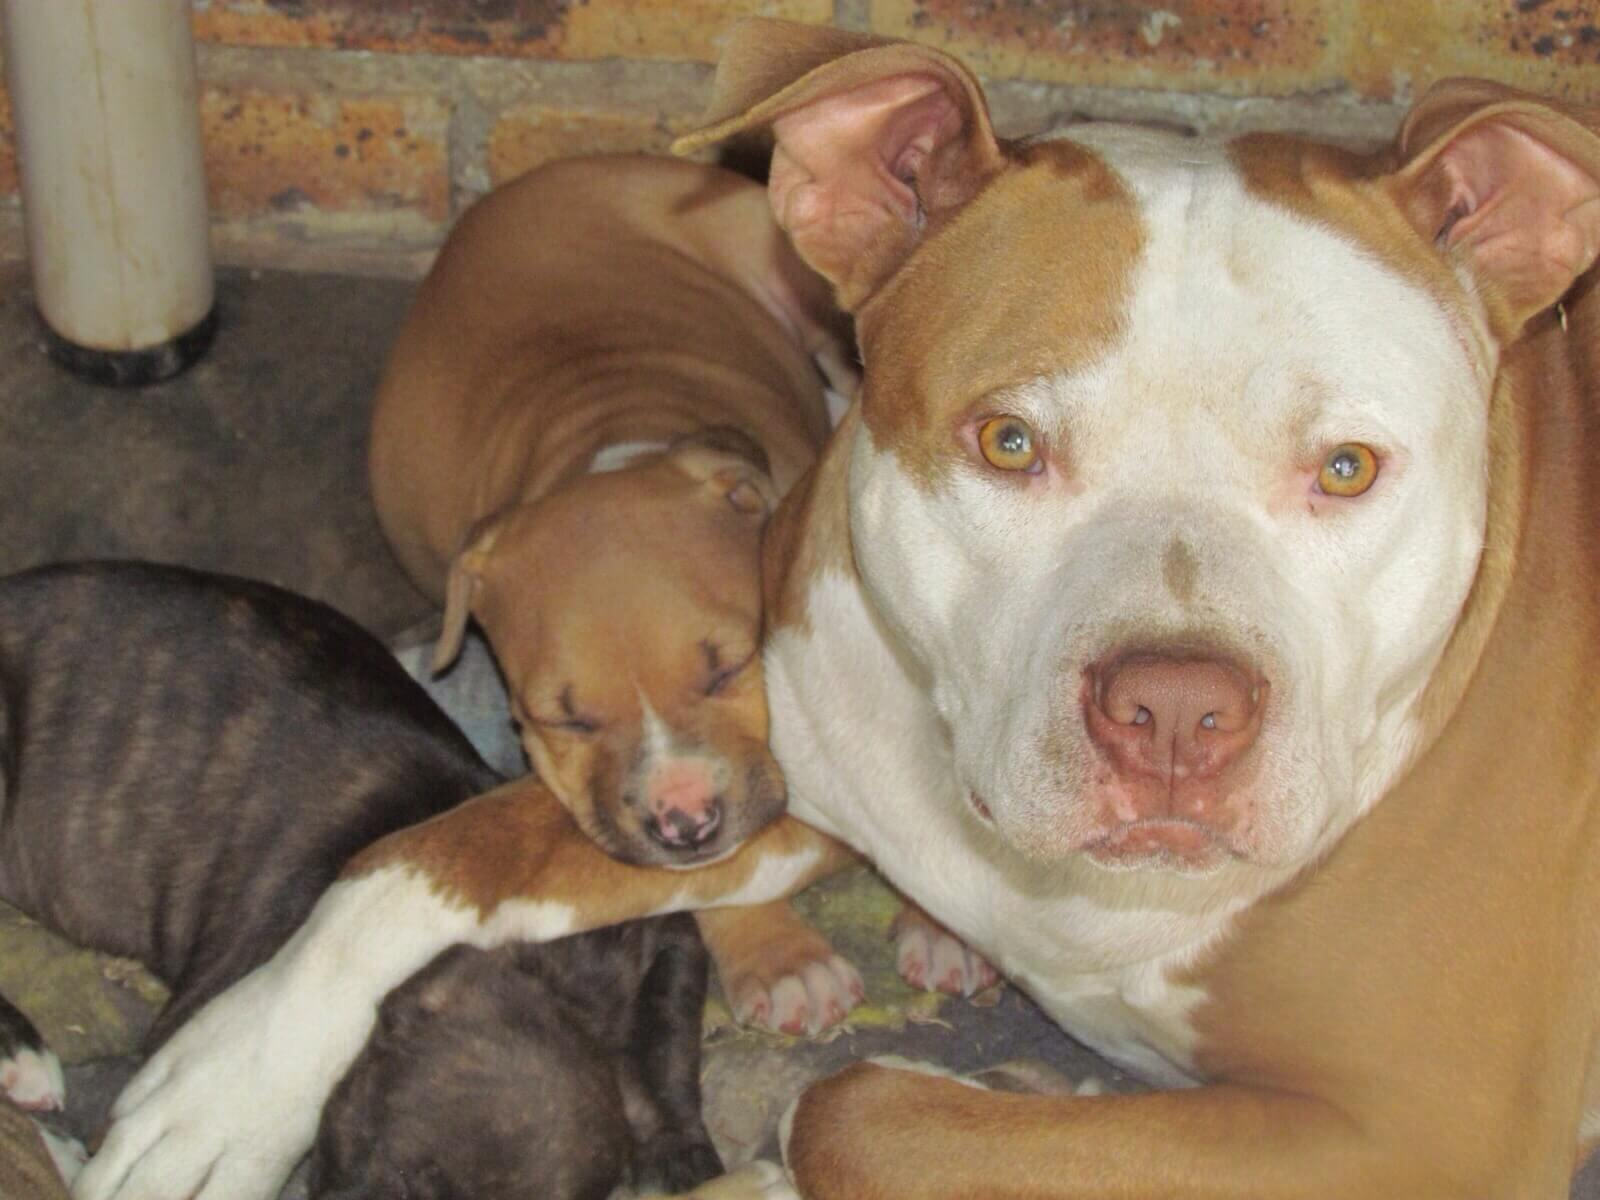 Pitbull Puppies for Sale in Johannesburg by Janis Le Roux